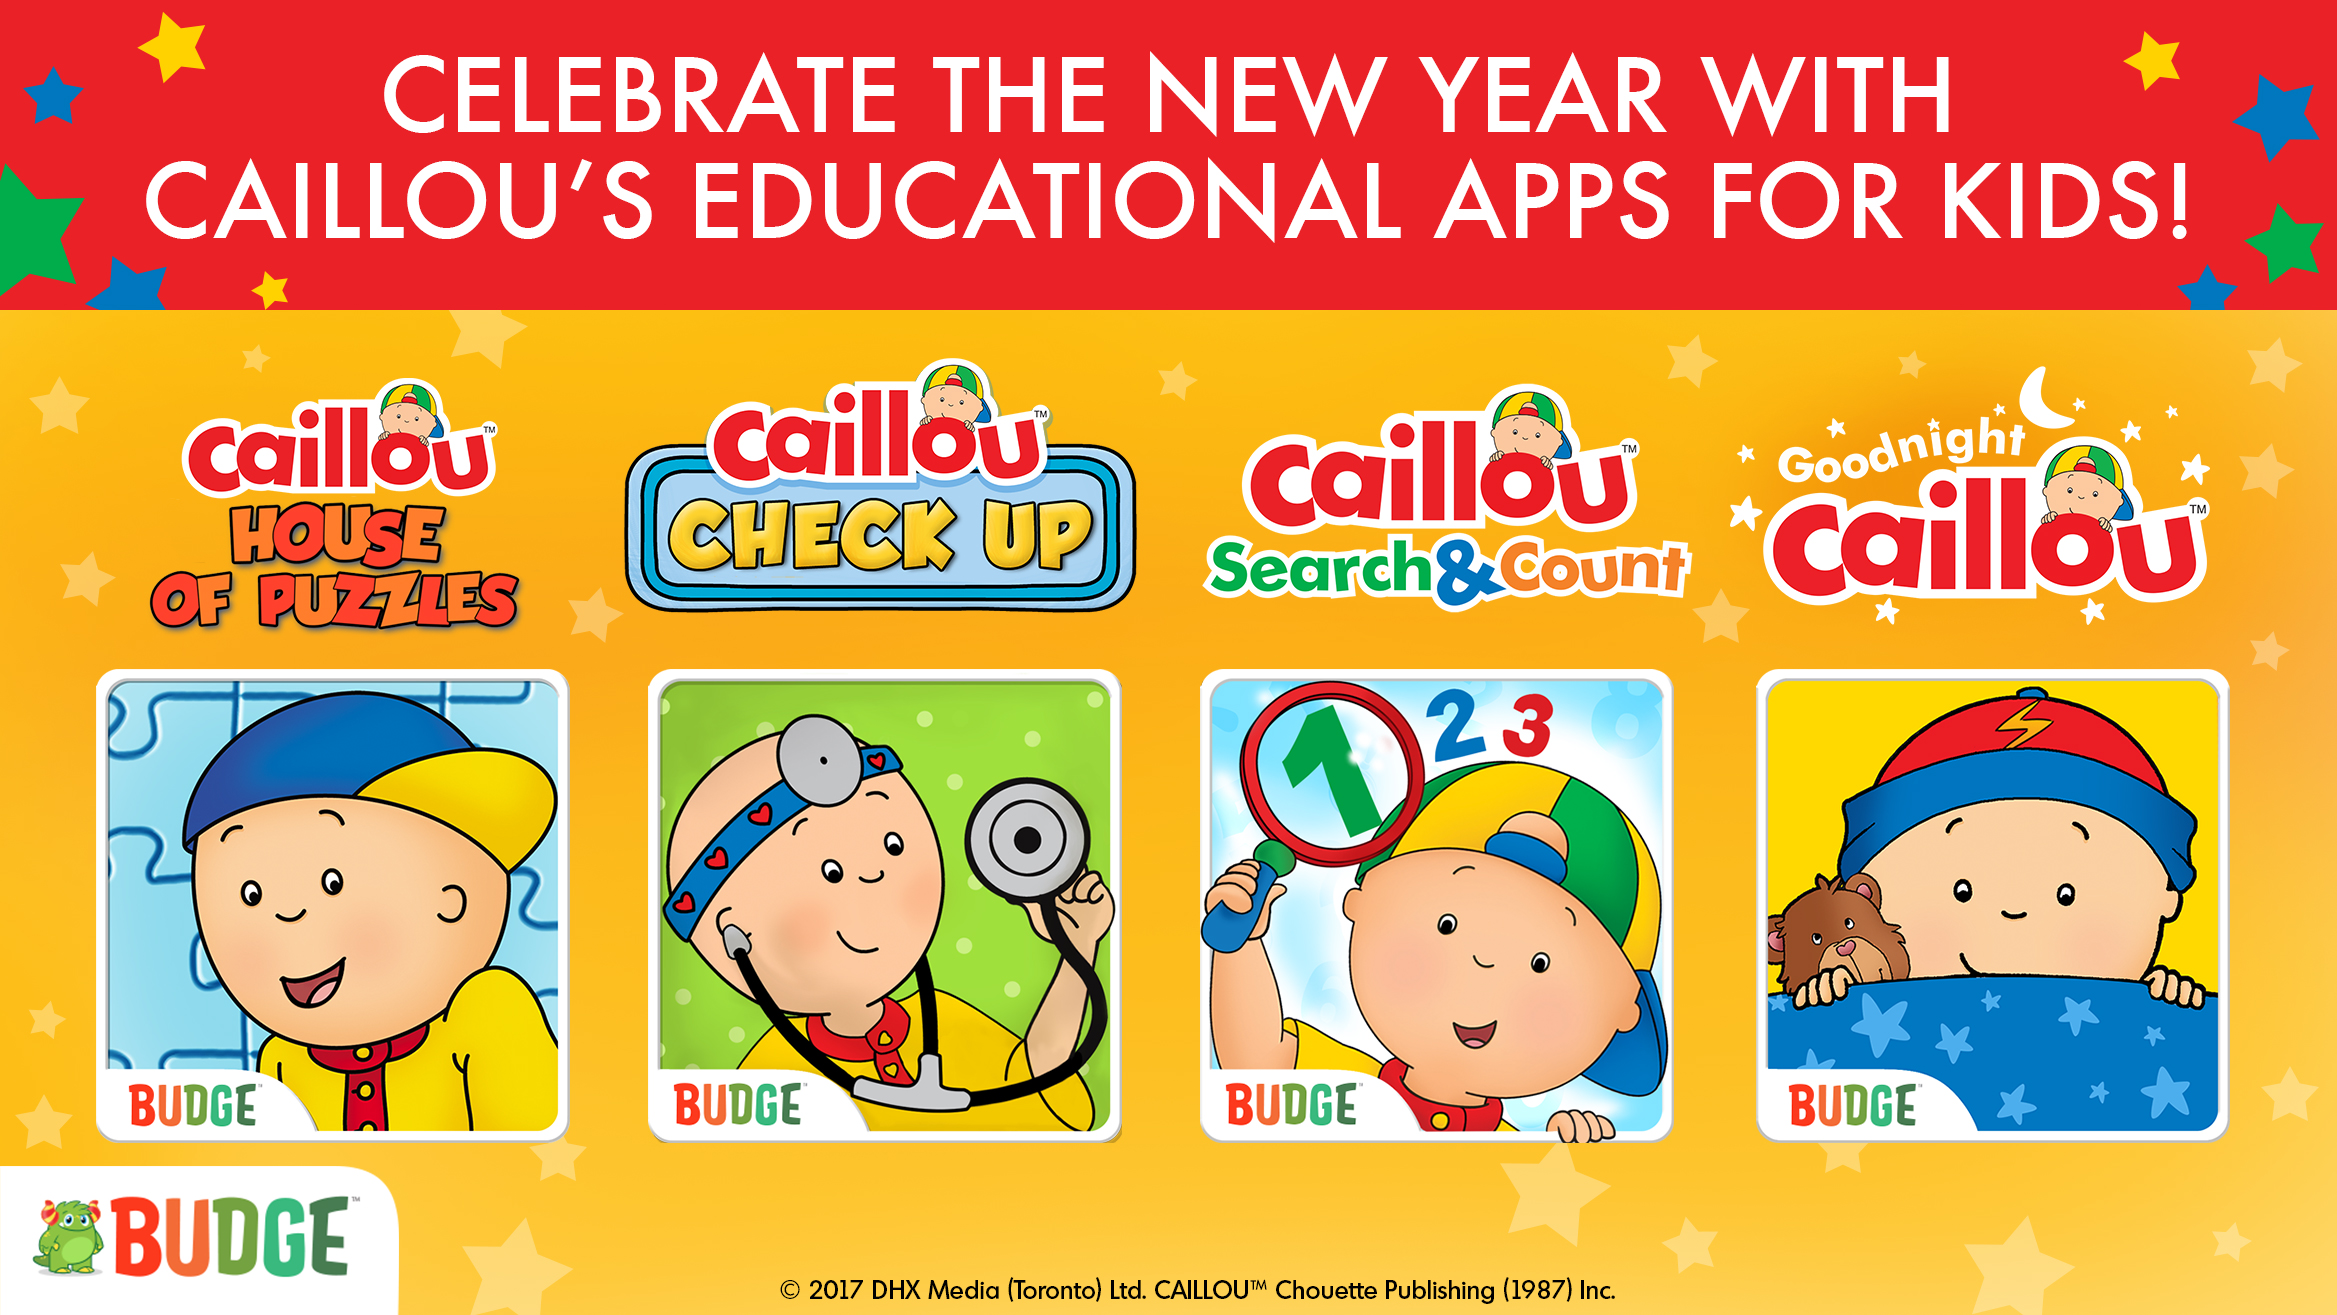 Celebrate the New Year with Caillou's Educational Apps for Kids! post image